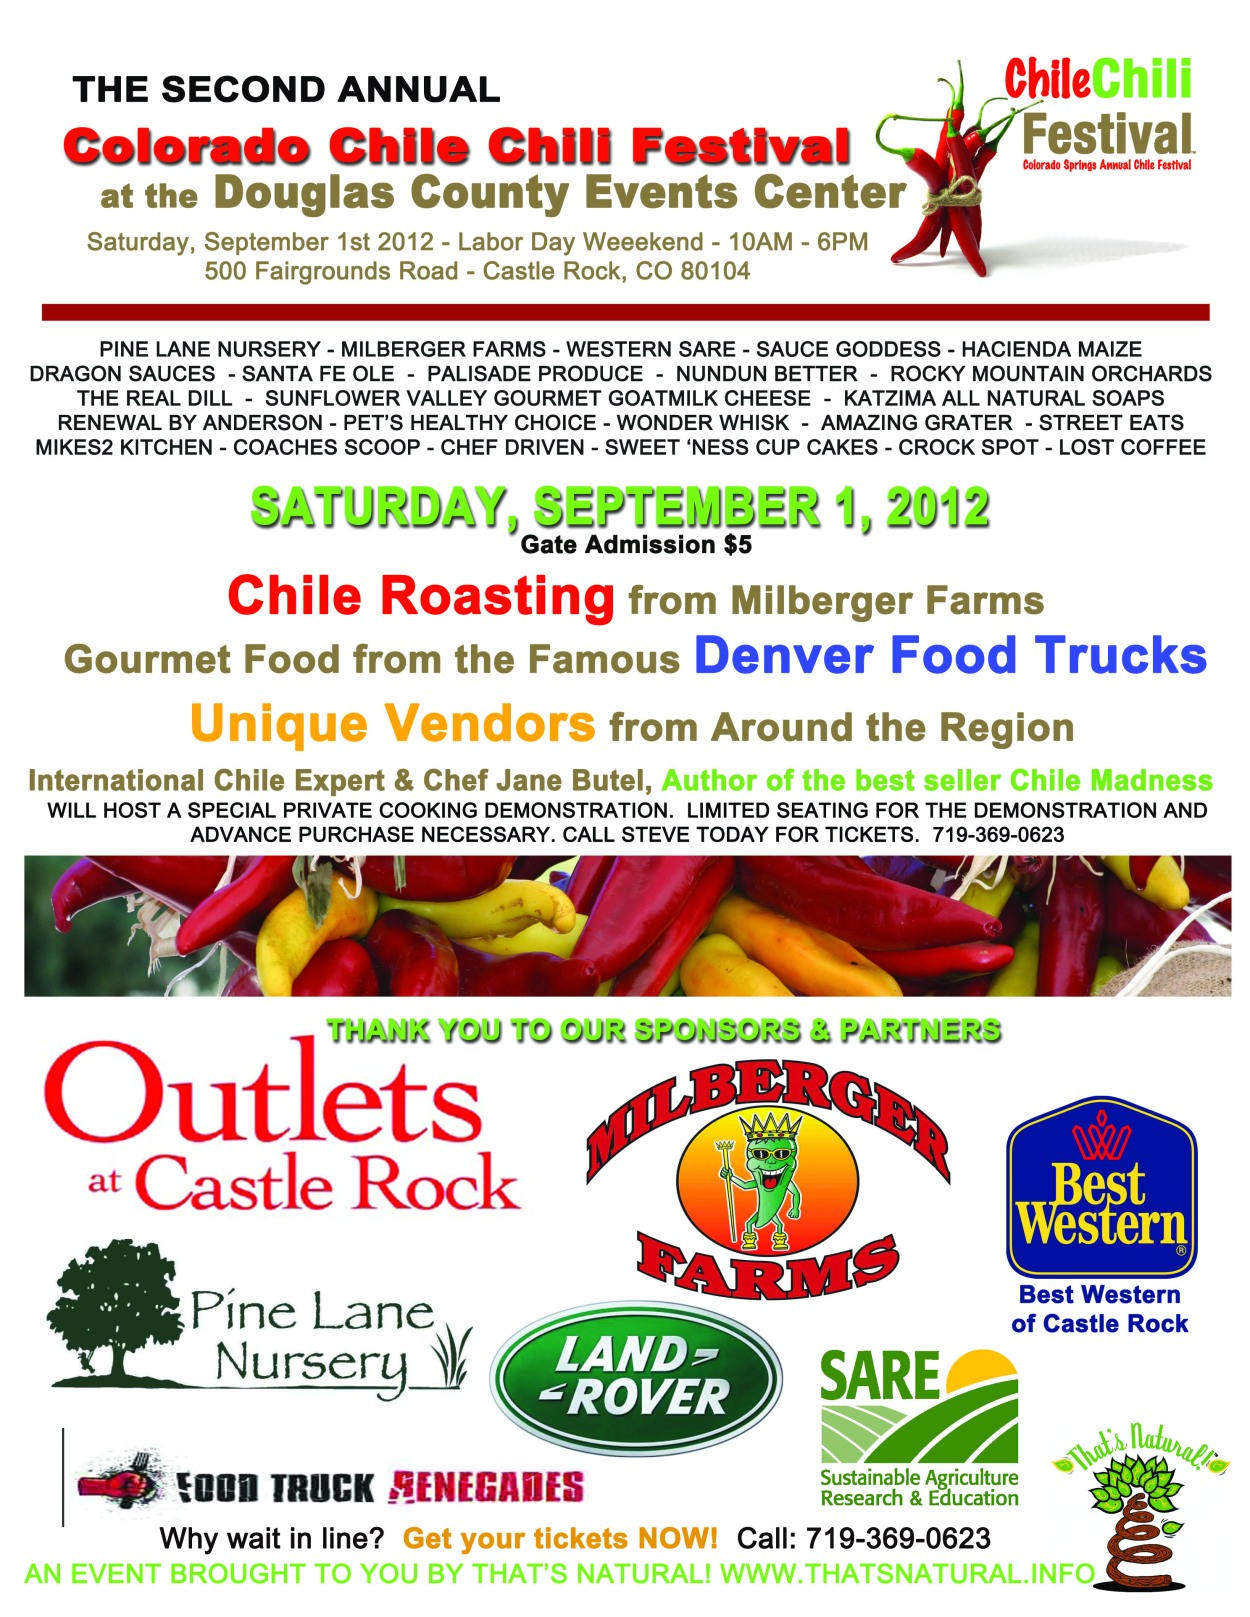 Chile Chili Fest 2012 Poster - Design from That's Natural! Marketing